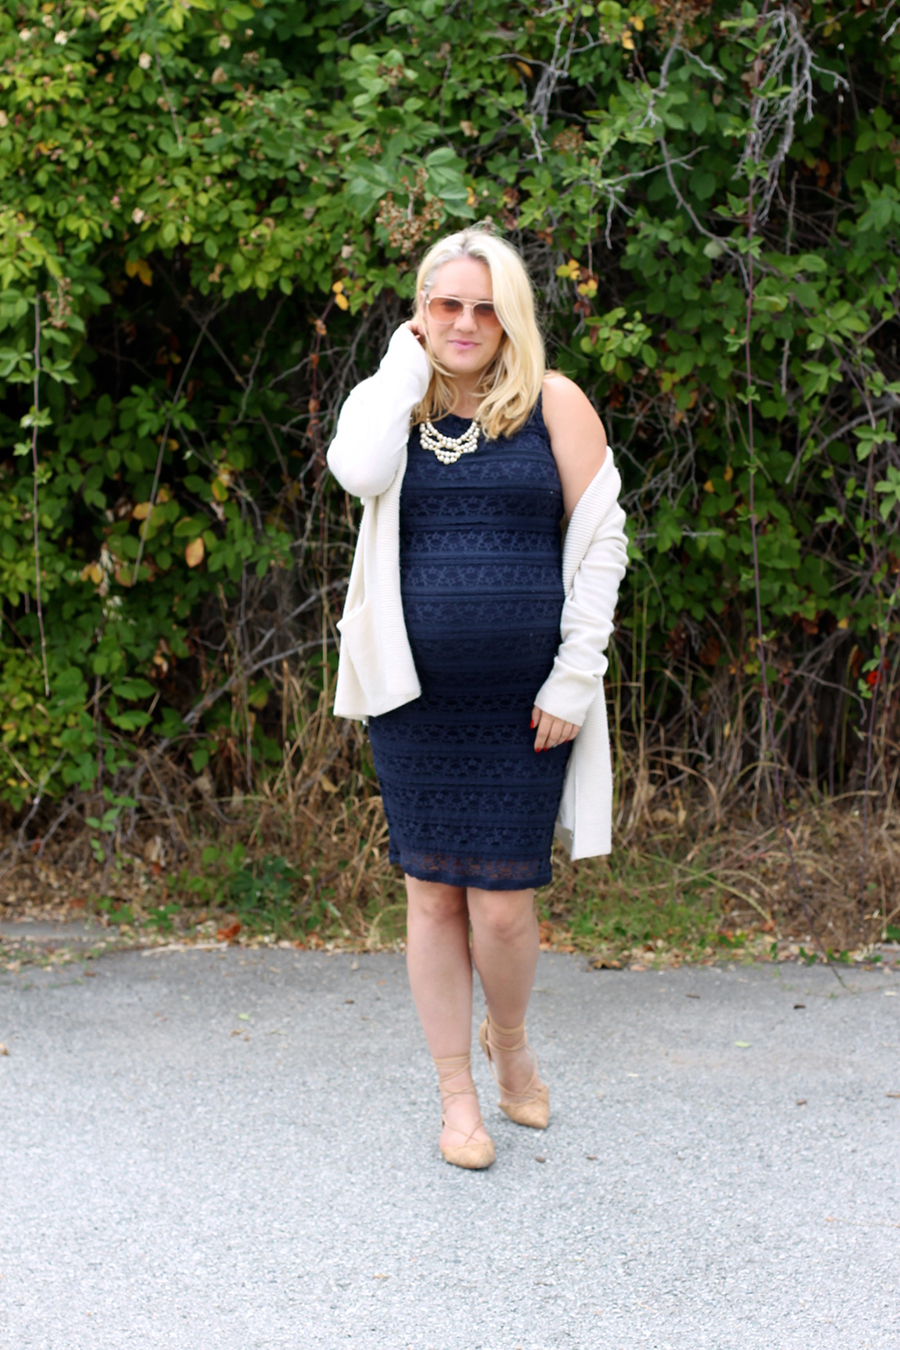 Ingrid and Isabel navy lace dress-Maternity Style-Outfit Inspiration-Bay Area Fashion Blogger-Have Need Want-Pregnancy Style 4